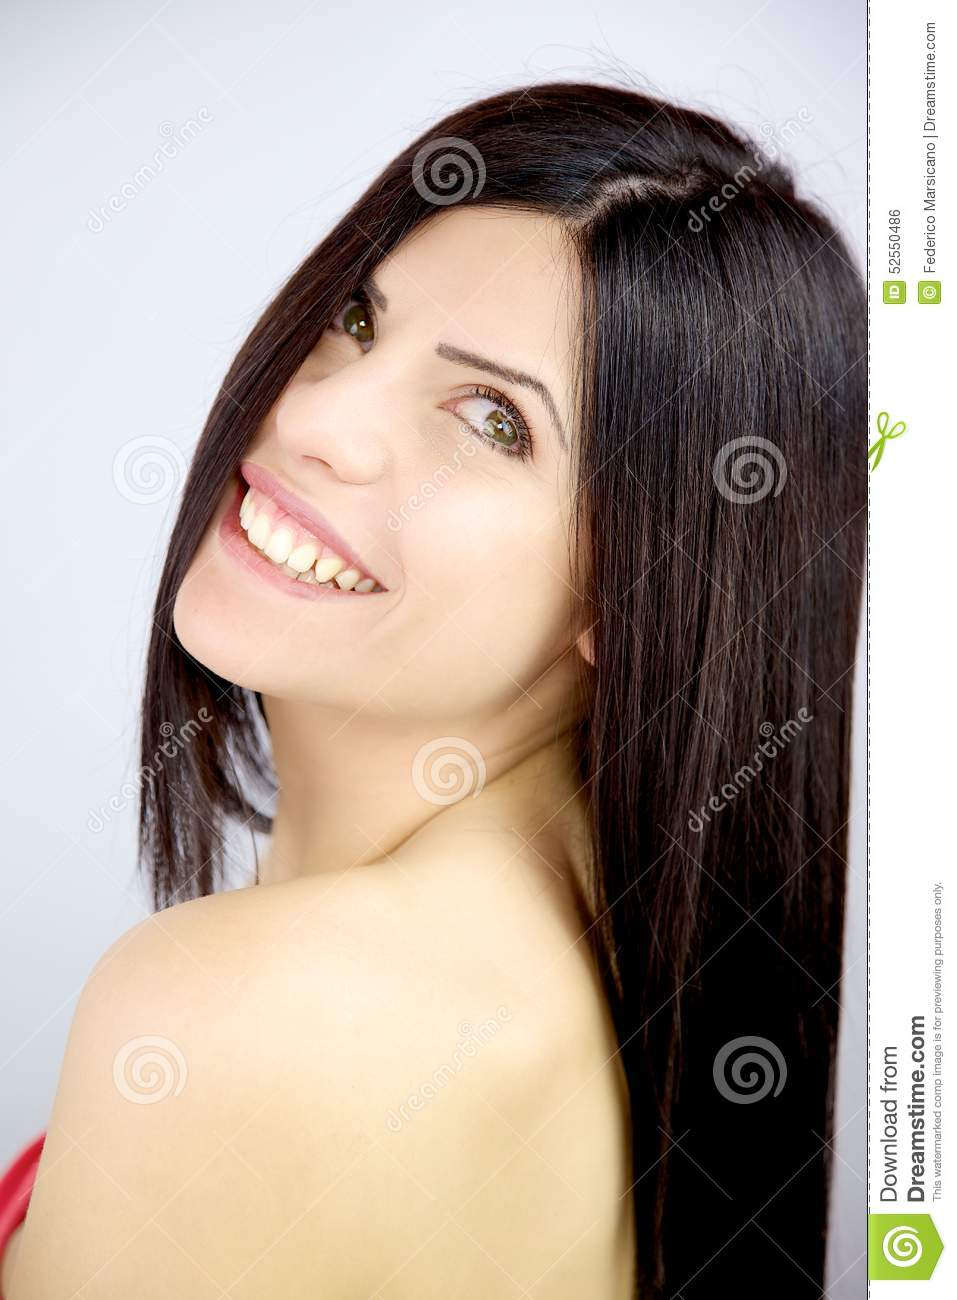 Woman With Beautiful Long Silky Hair Smiling In Studio Stock Photo